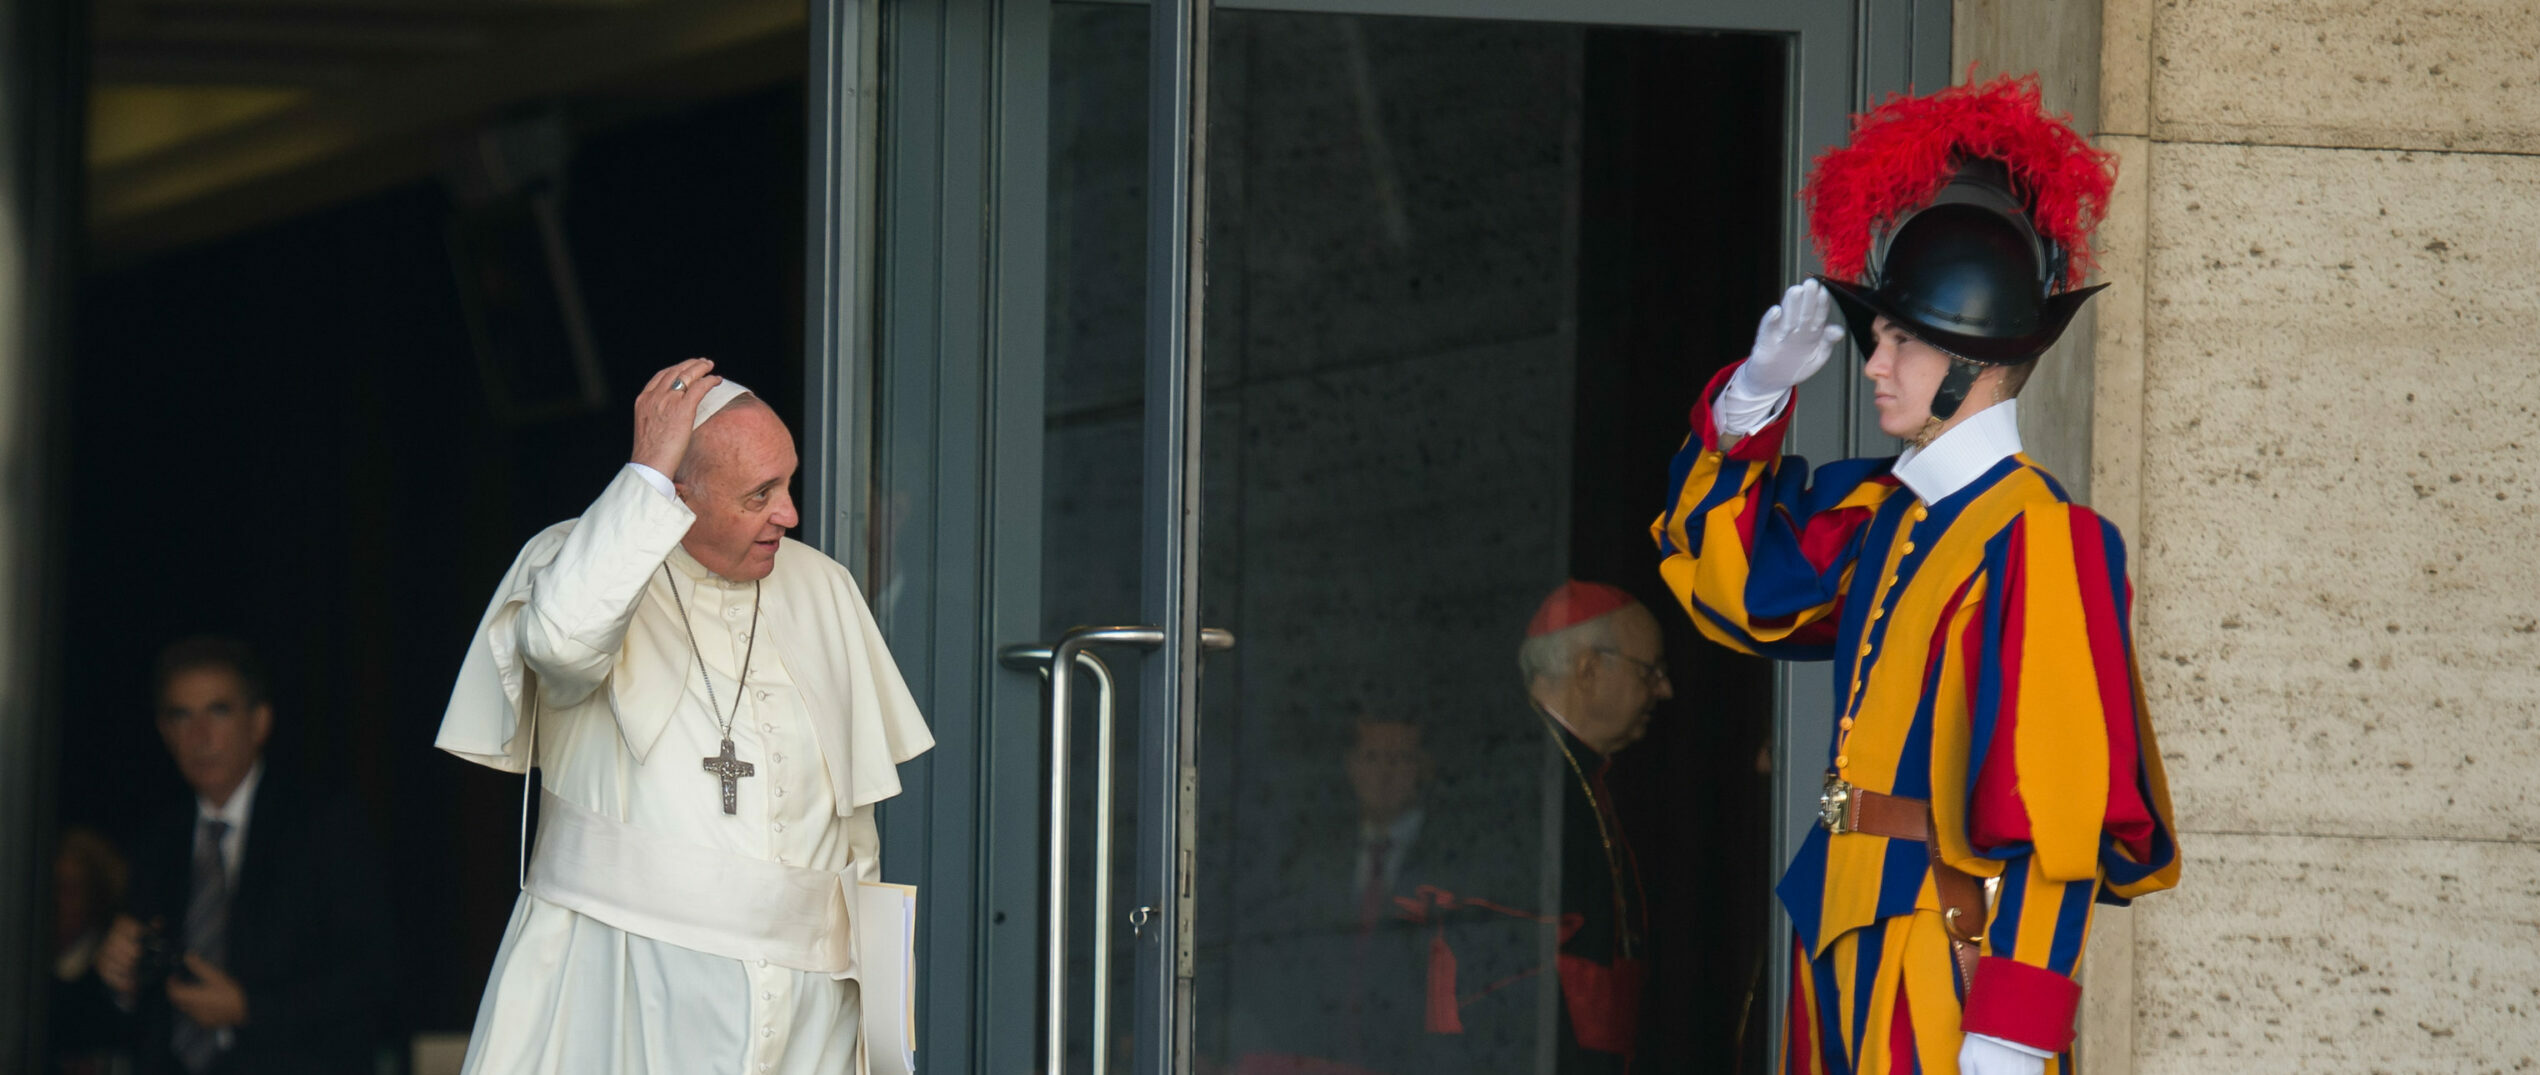 Disagreement with the pope on doctrinal and prudential matters